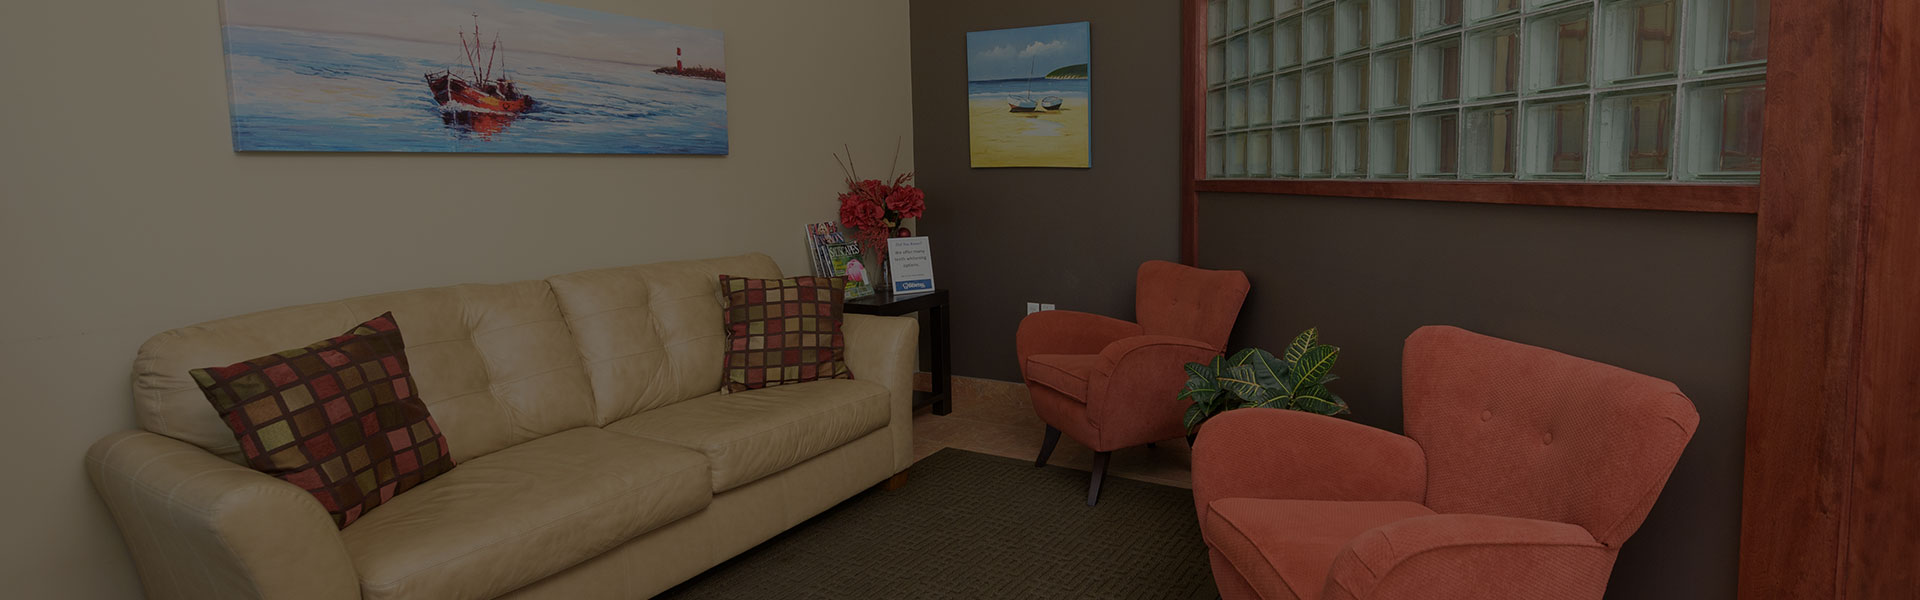 alliance dental bridgewater waiting area